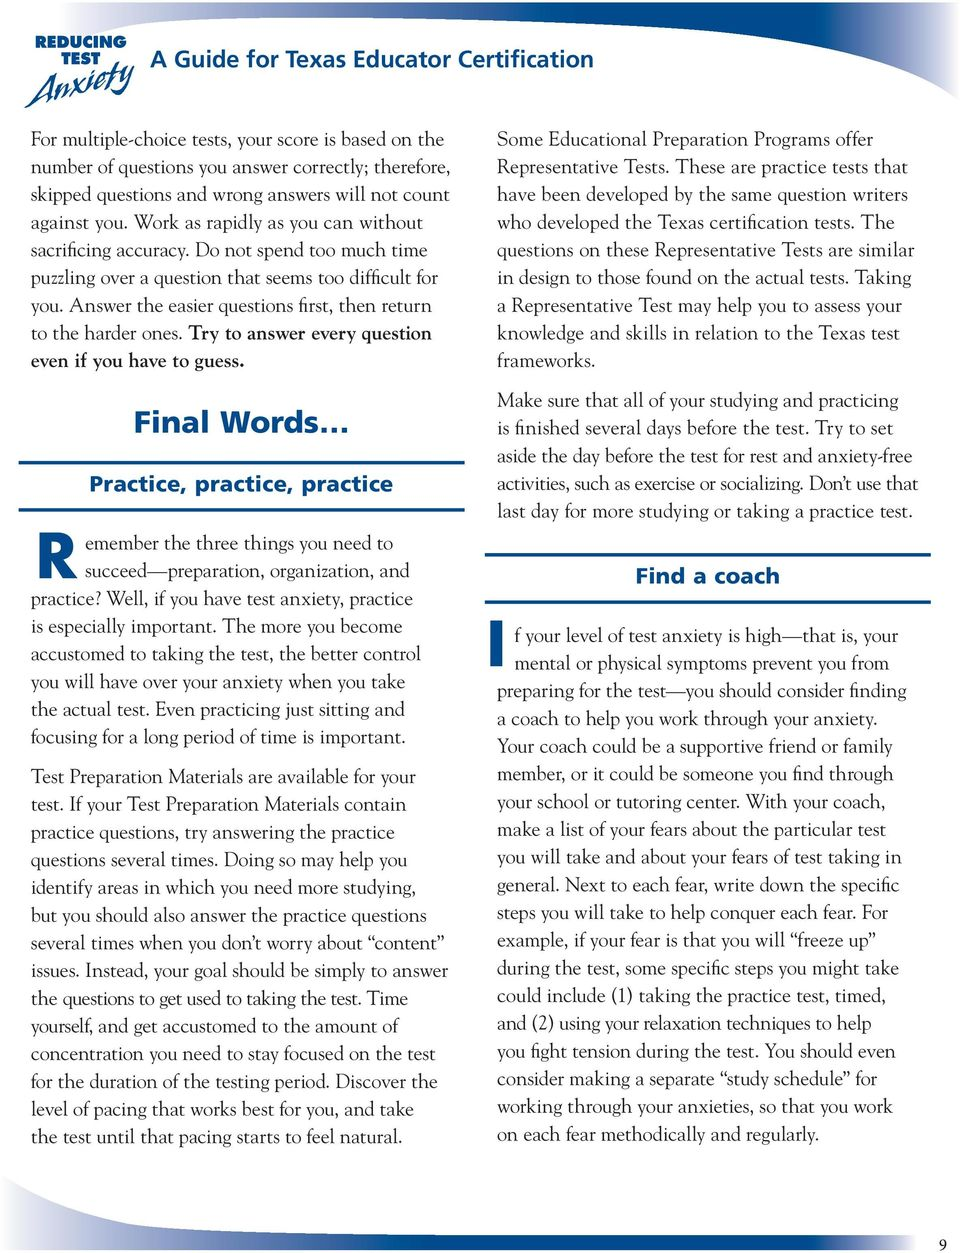 Reducing Test Anxiety - PDF